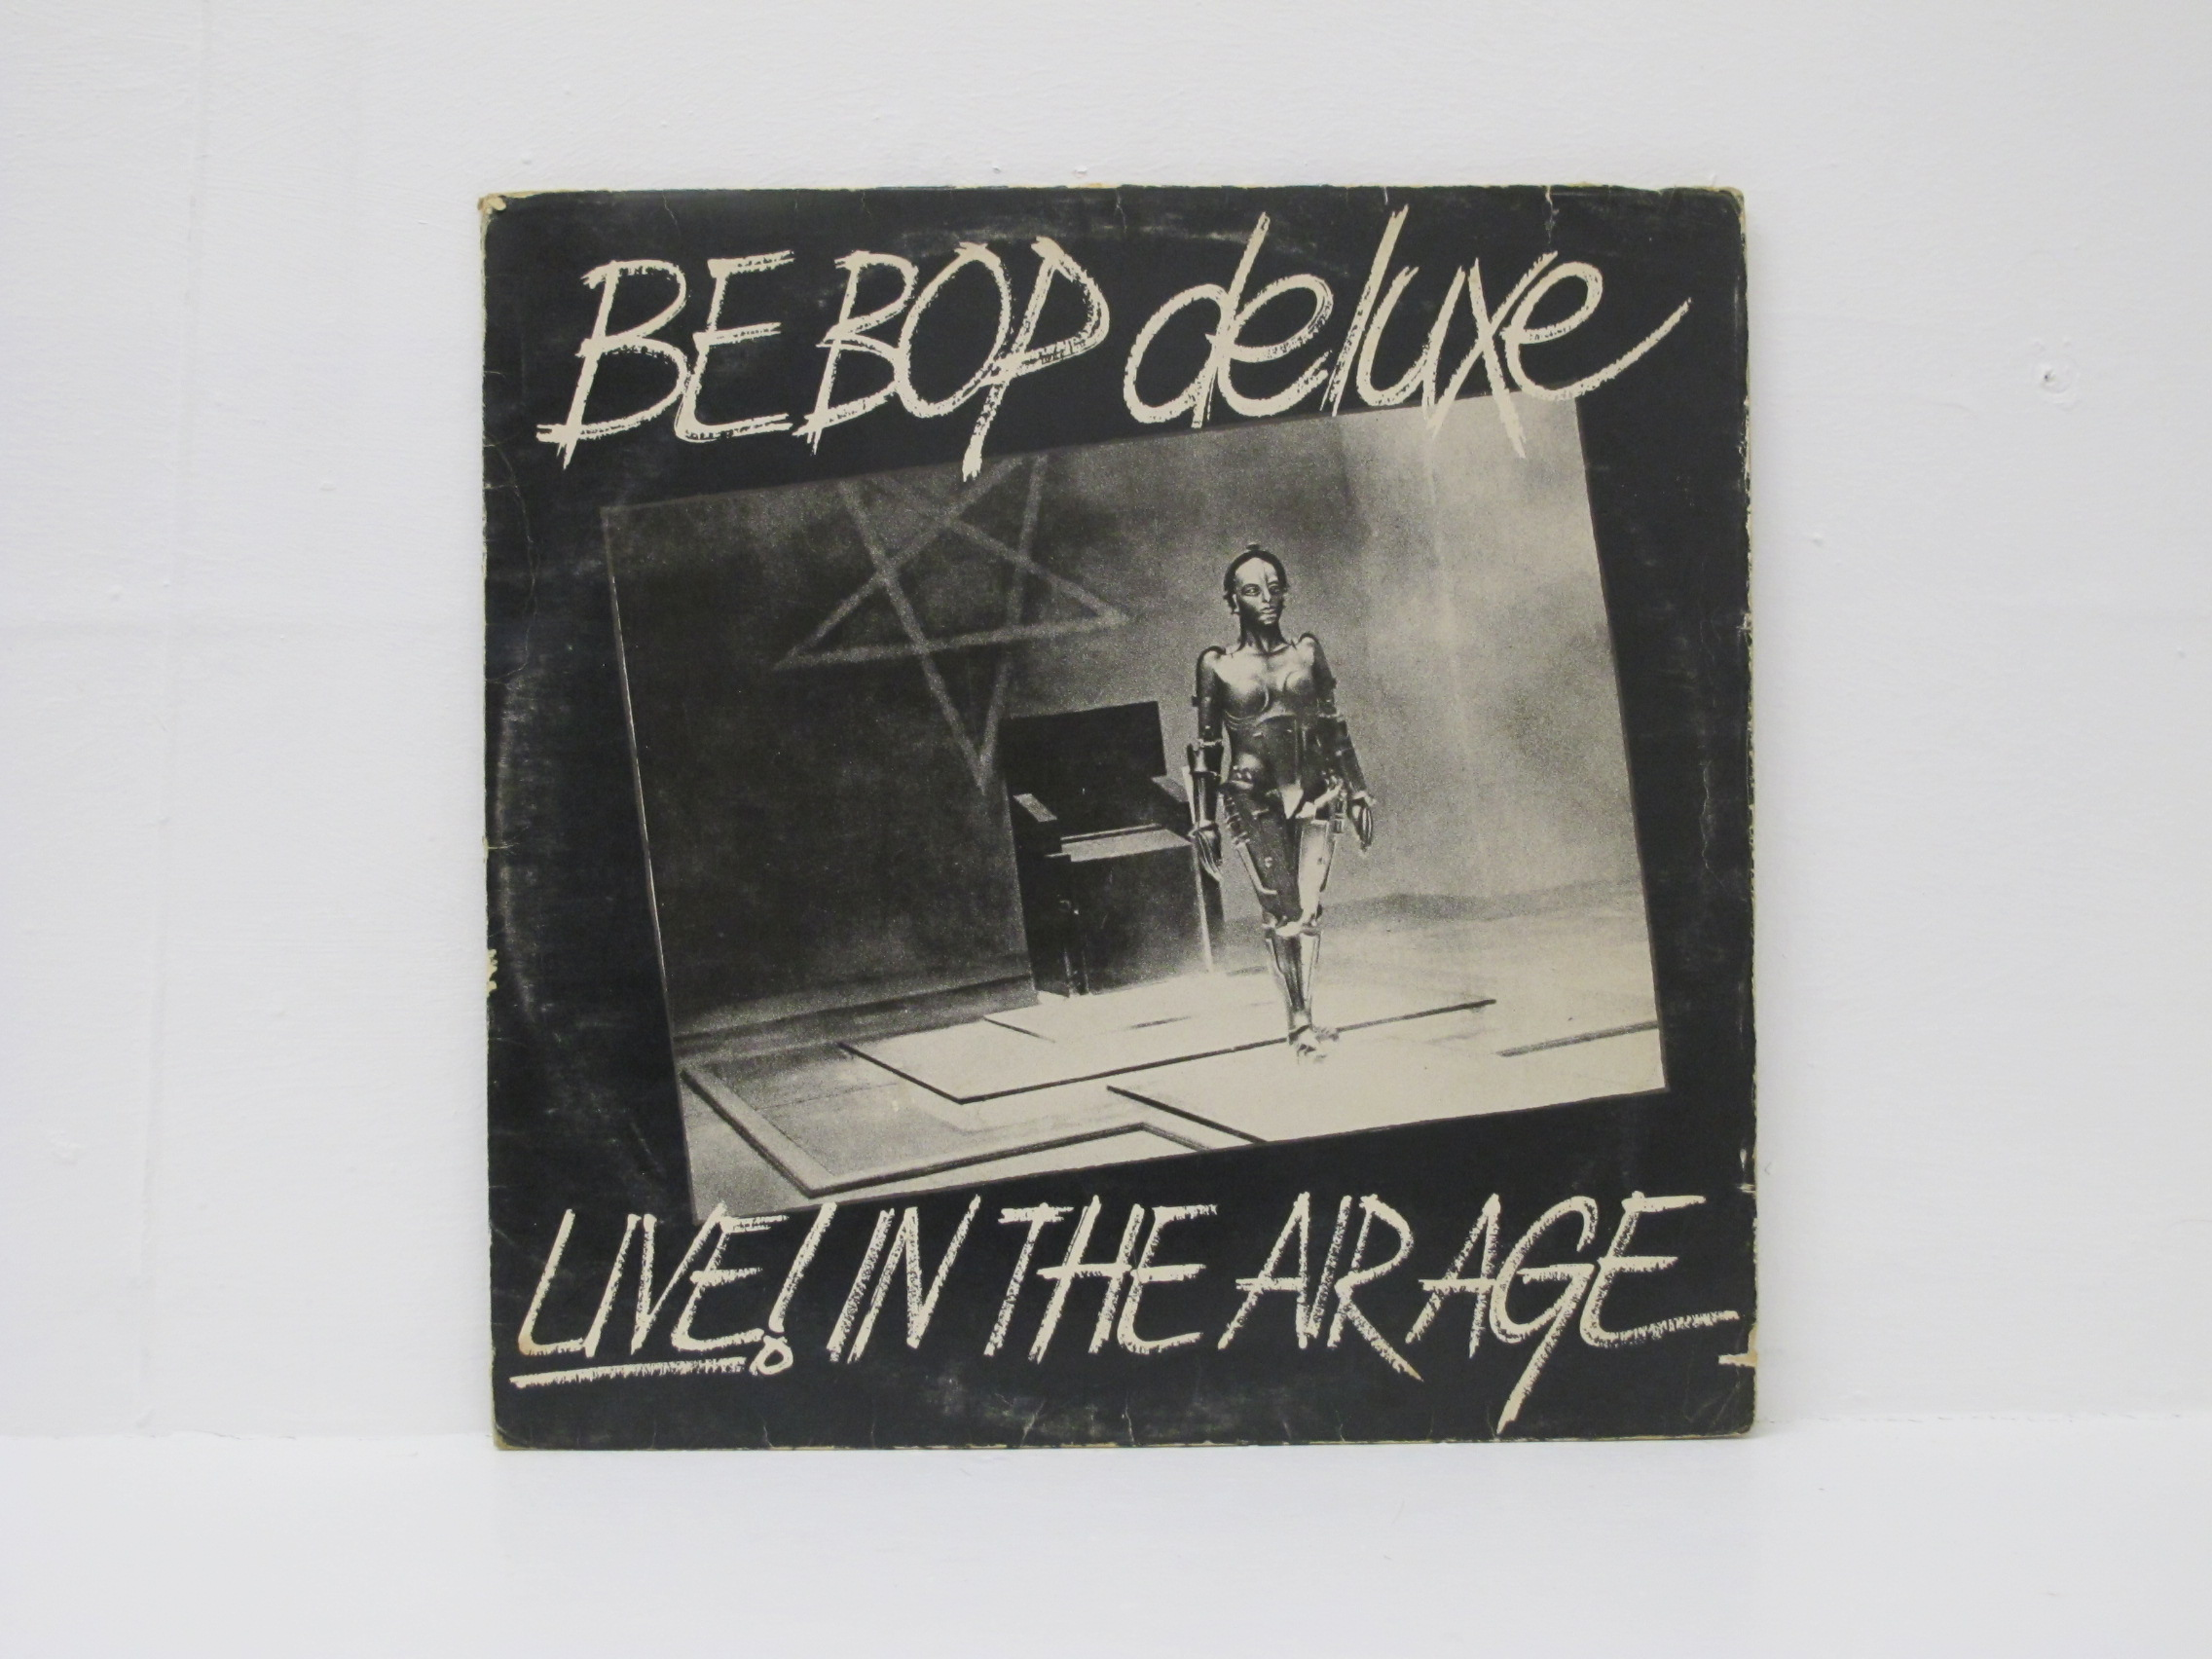 Bebop Deluxe - Live In The Air Age